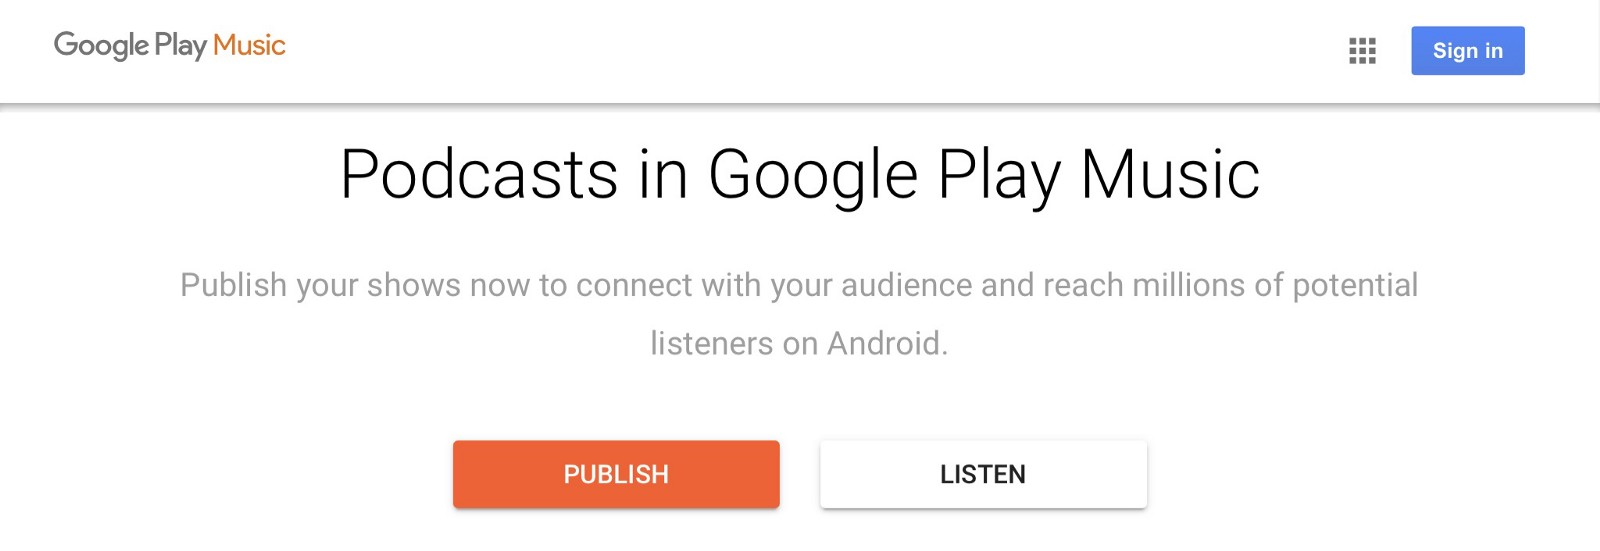 How to submit your podcast to Google Play